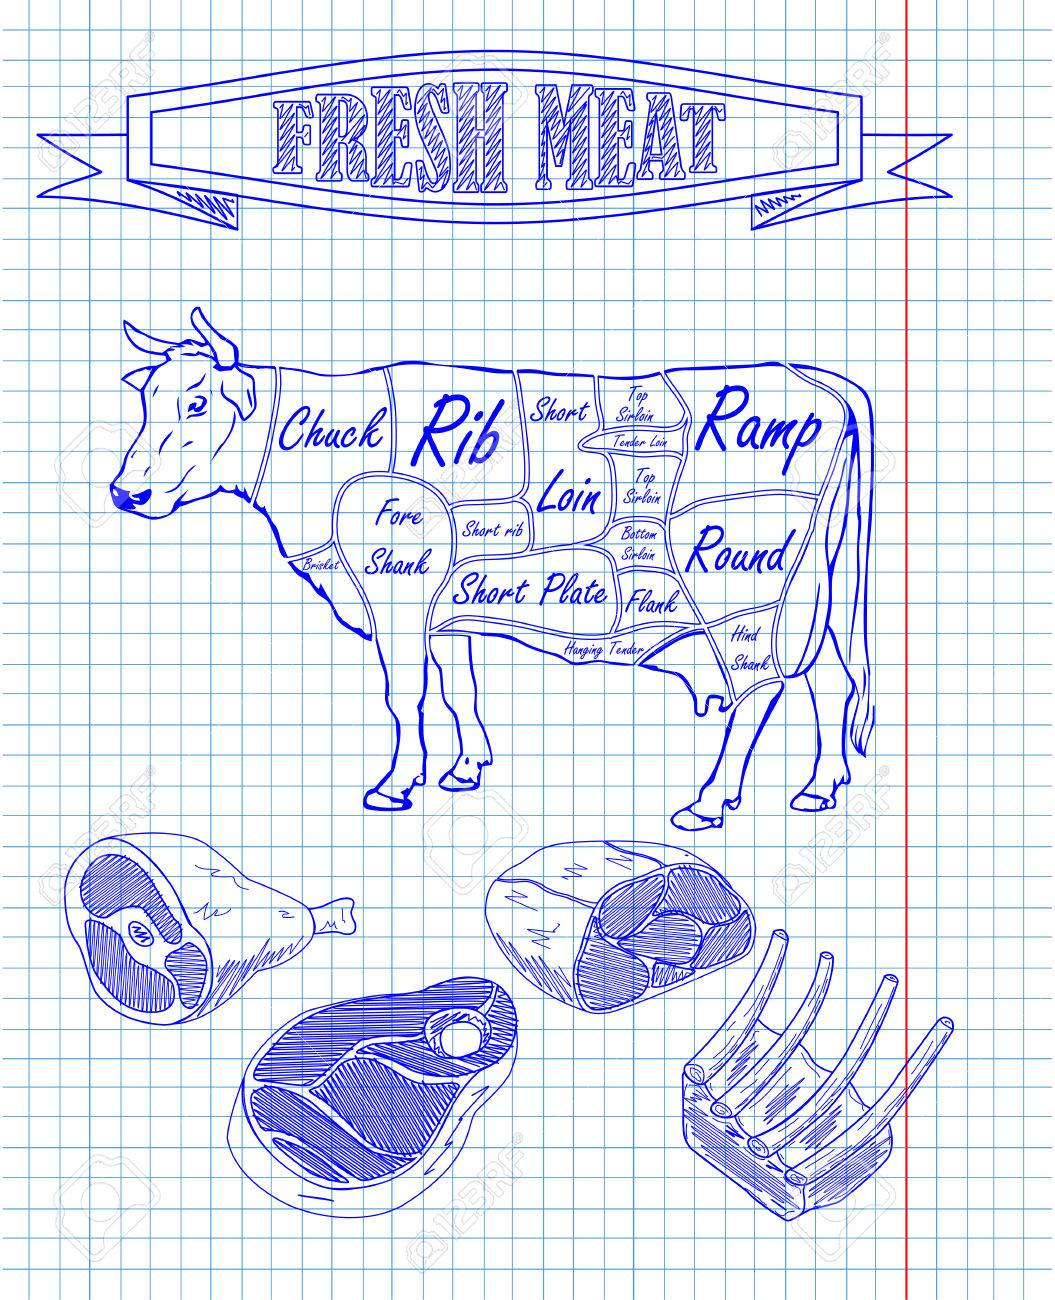 beef scheme and pieces of meat drawing with pan - 52235982